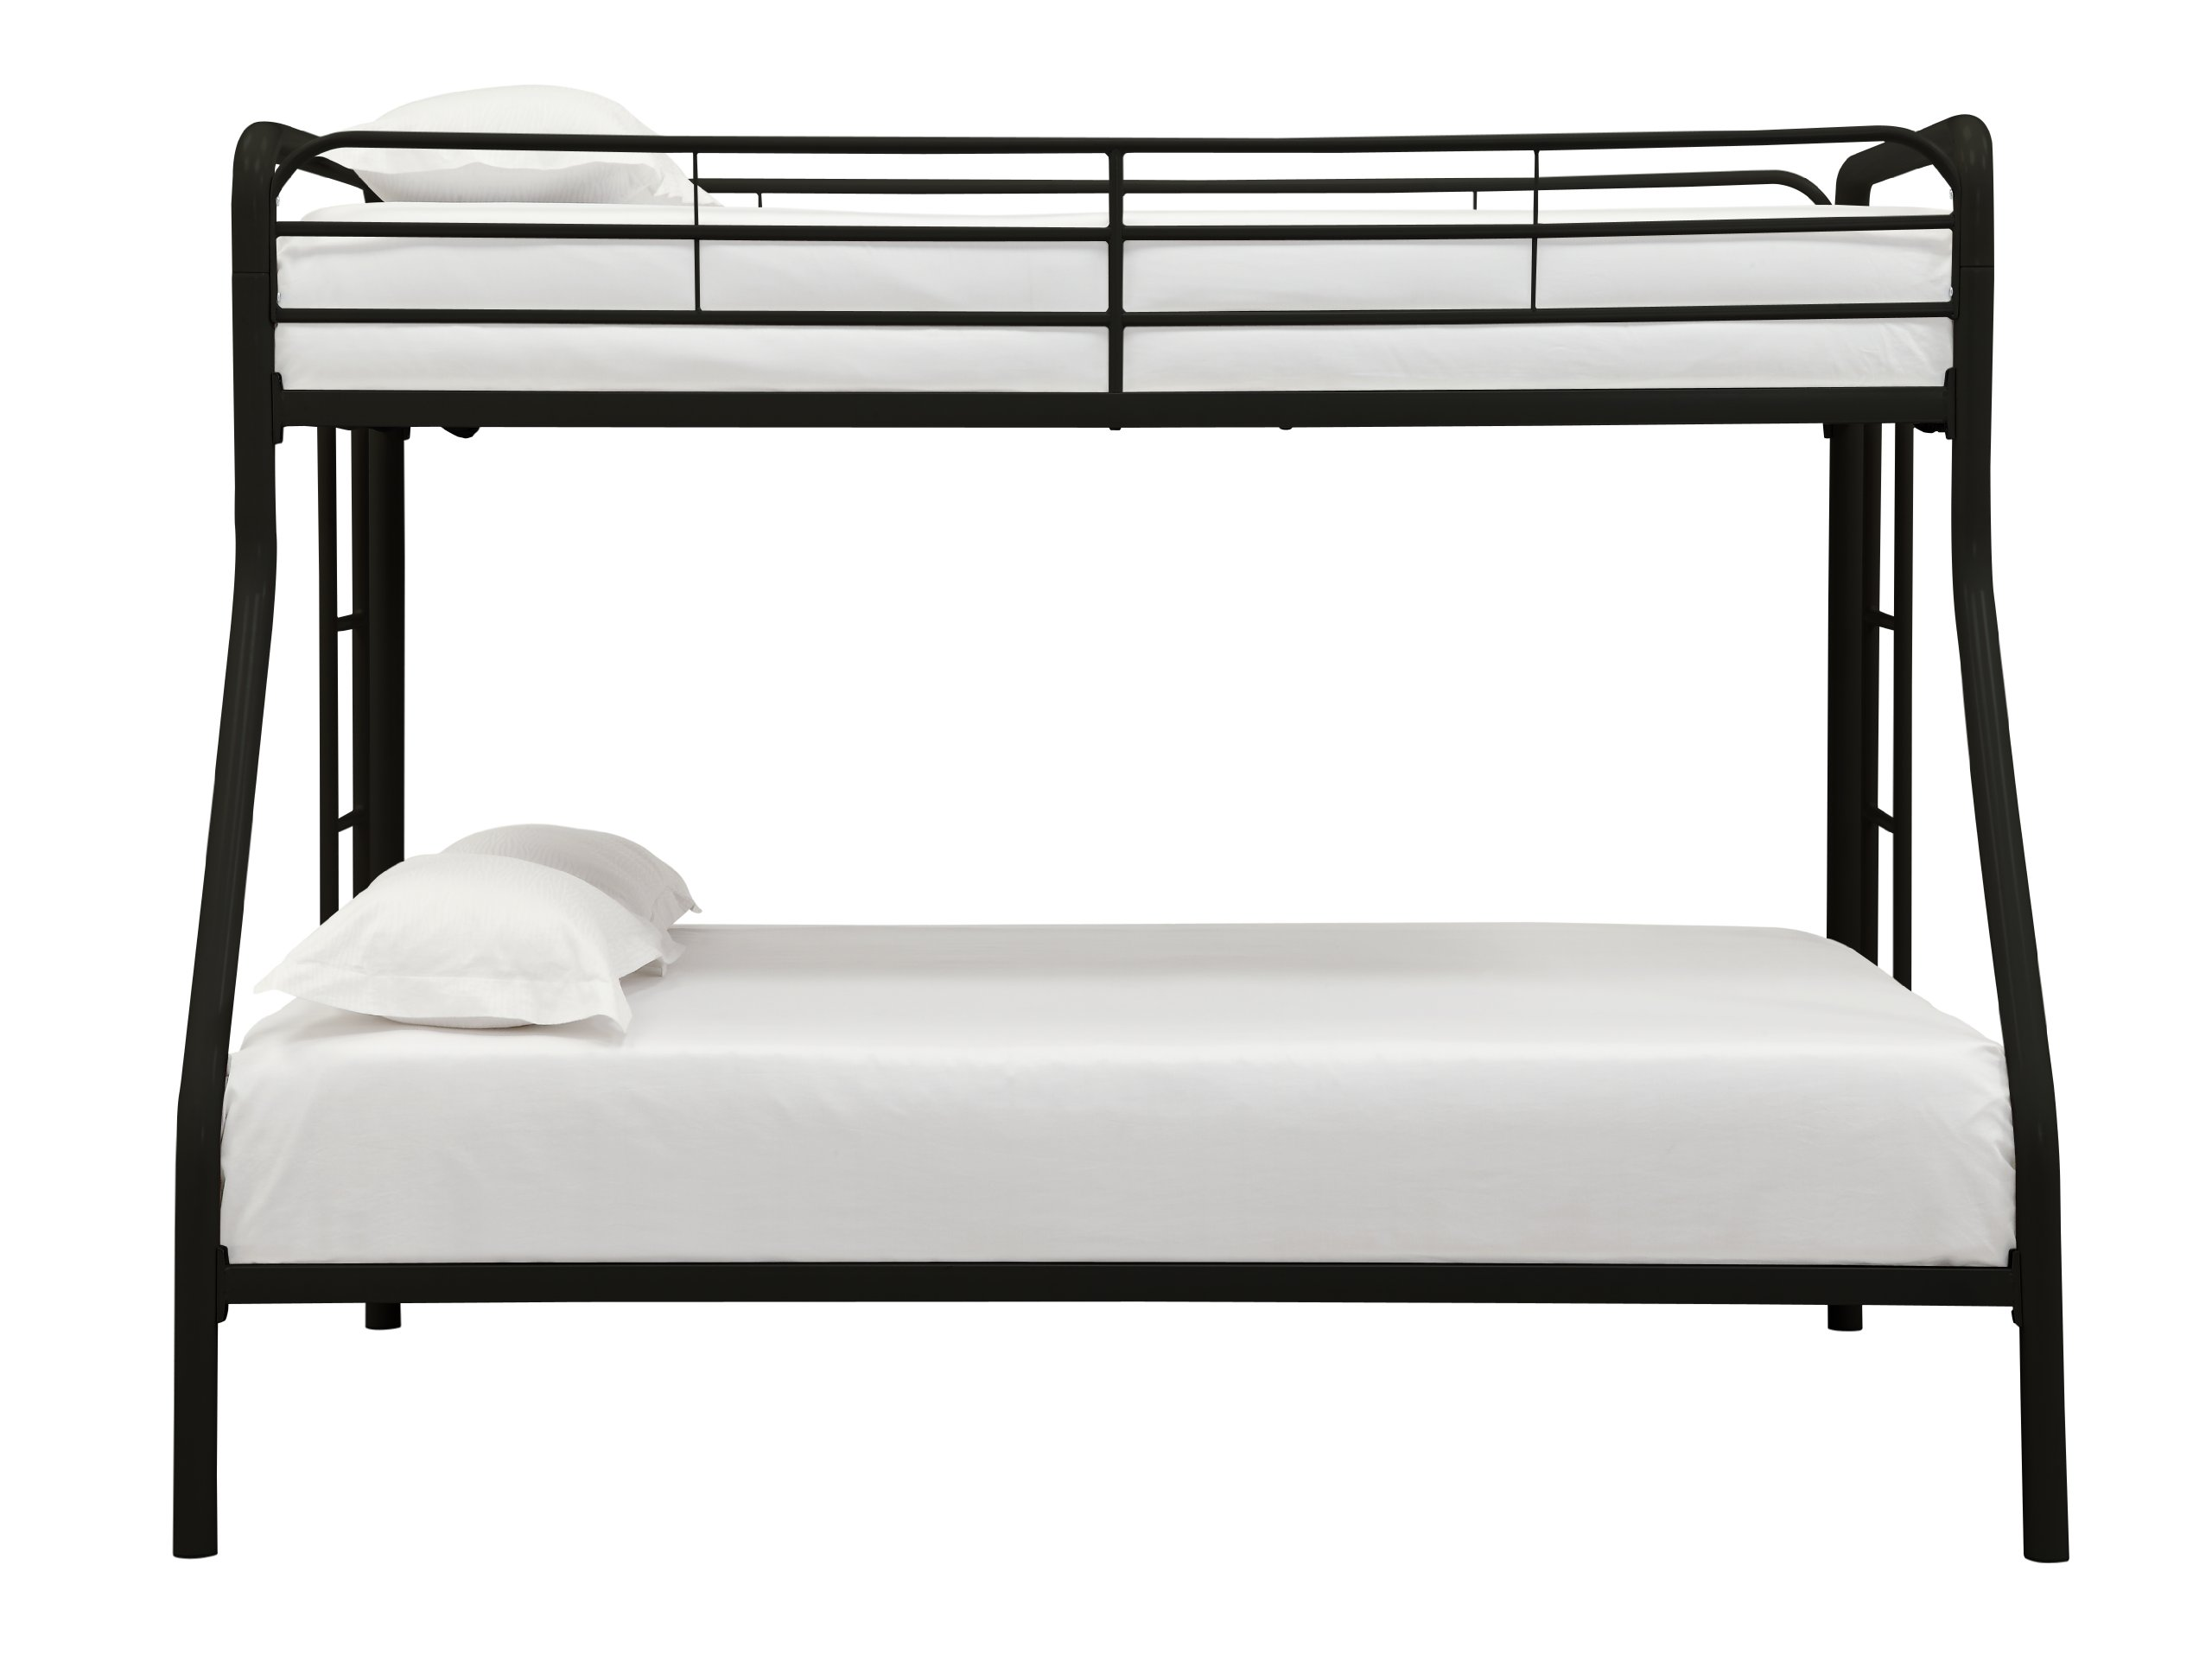 DHP Twin-Over-Full Bunk Bed with Metal Frame and Ladder, Space-Saving Design, Black by DHP (Image #4)